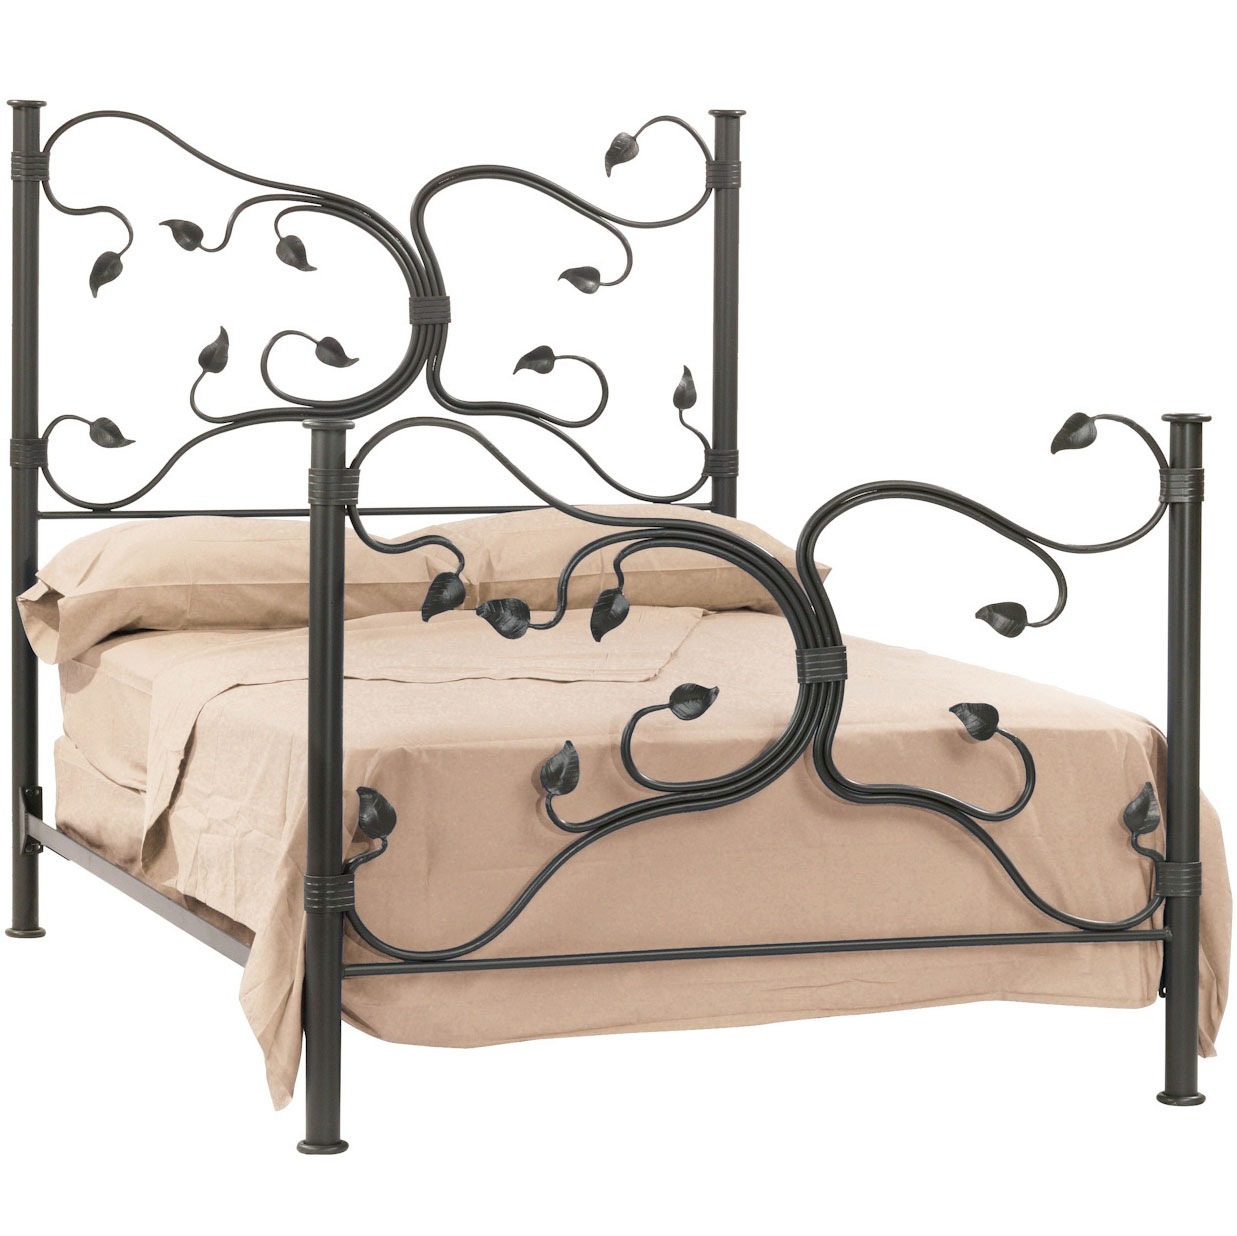 Eden isle headboard Wrought iron headboard